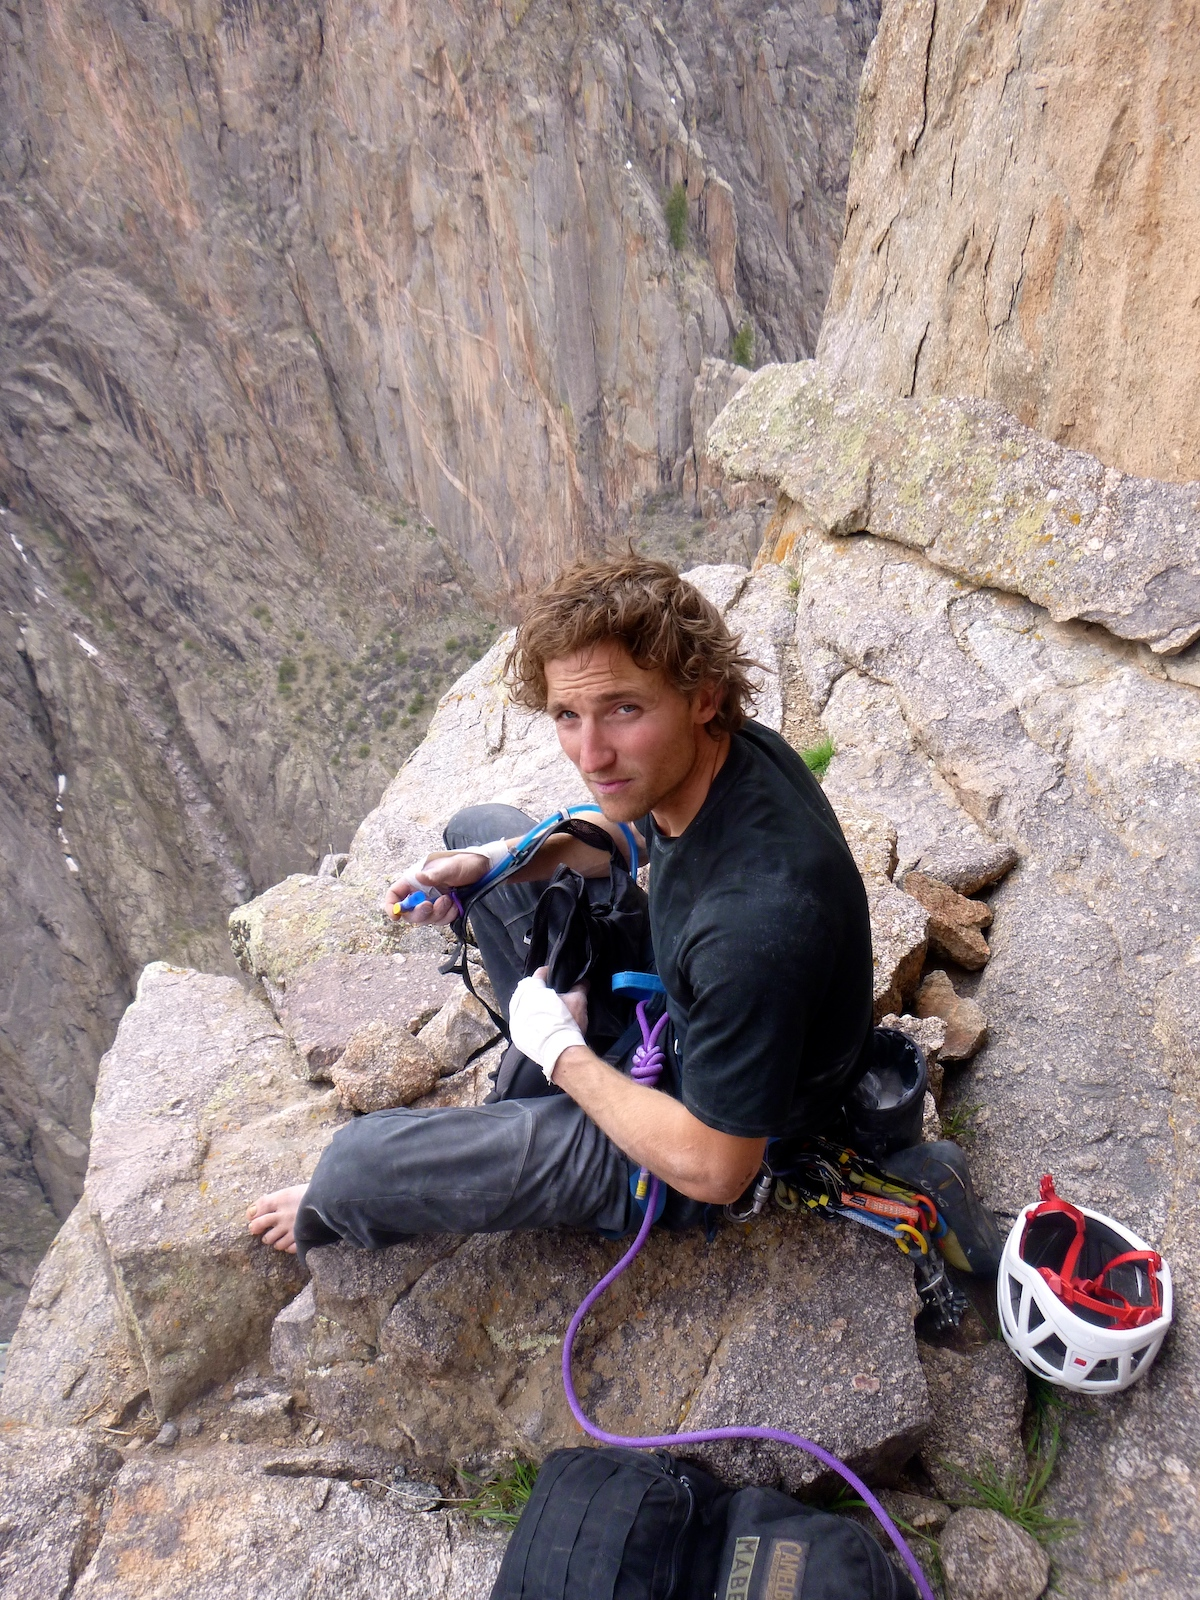 Jack Cody wearing tape gloves in the Black Canyon of the Gunnison, 2014. [Photo] Derek Franz